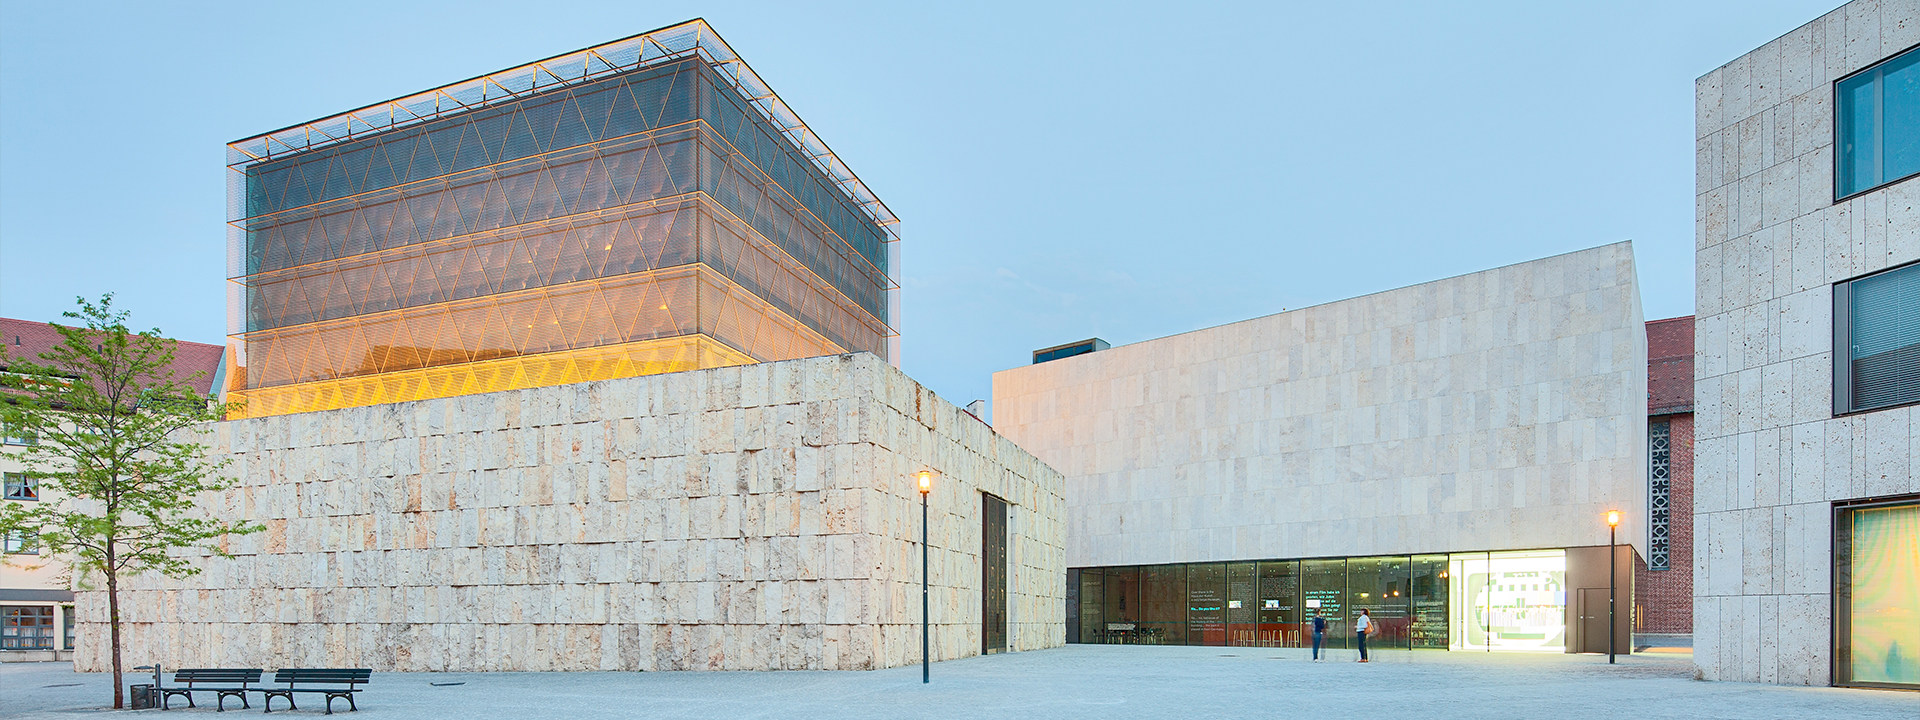 The Jewish Museum – Architecture